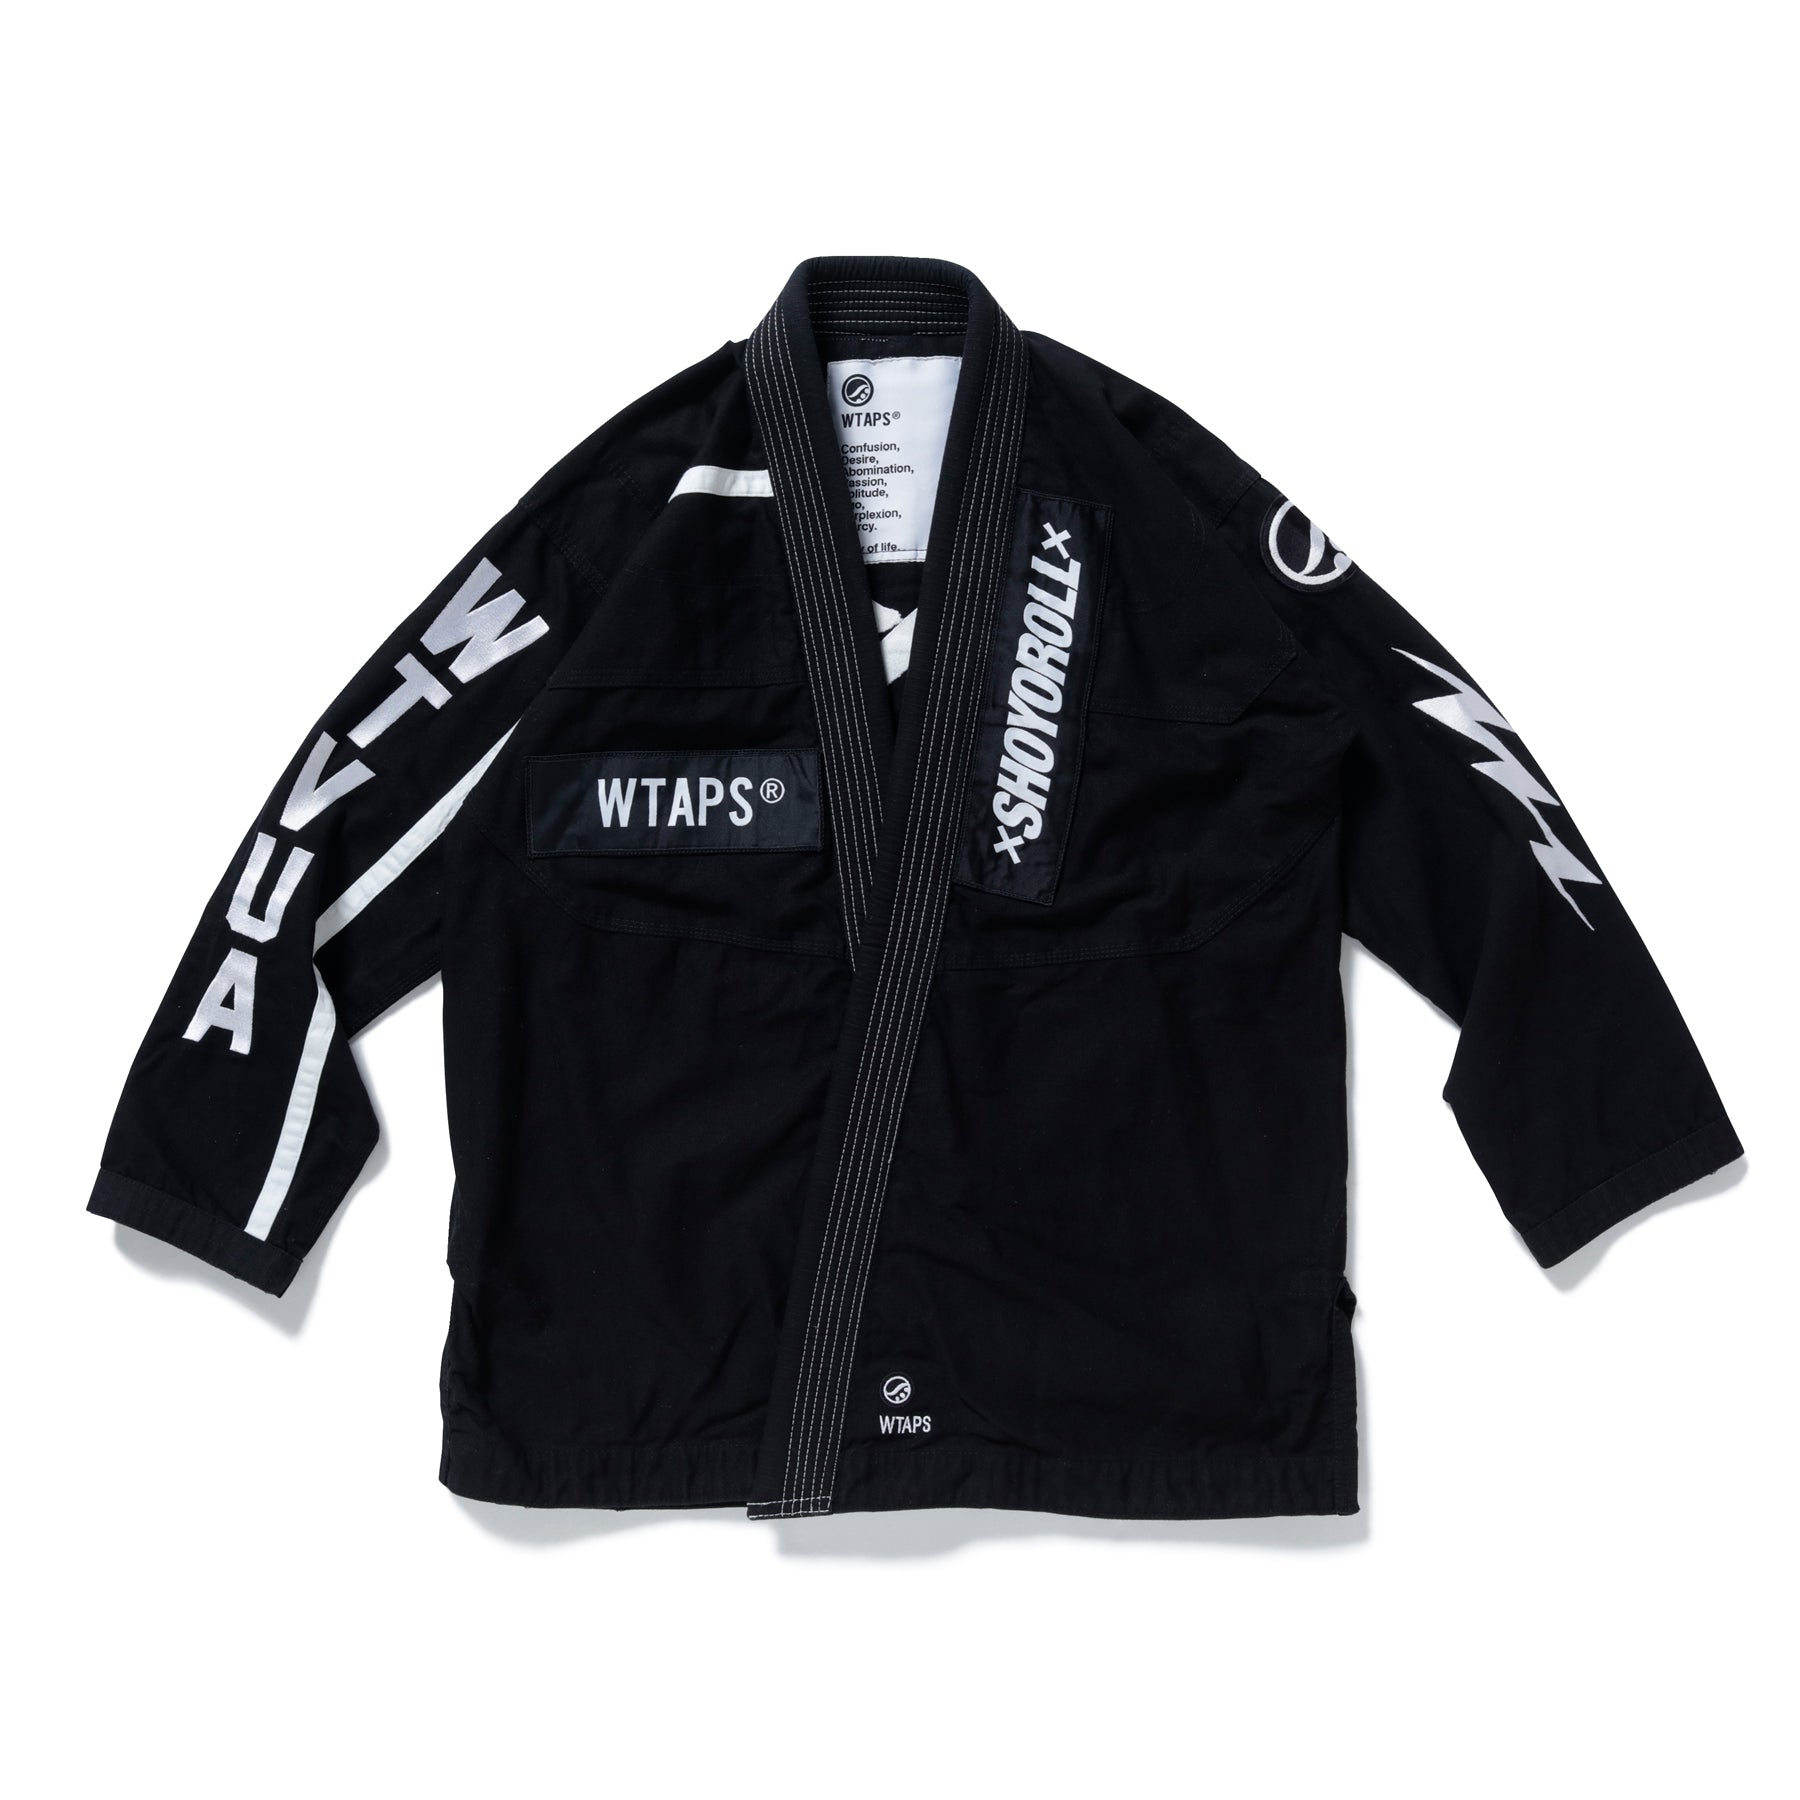 Batch #113 WTAPS Kimono (Black) *Ships to US only